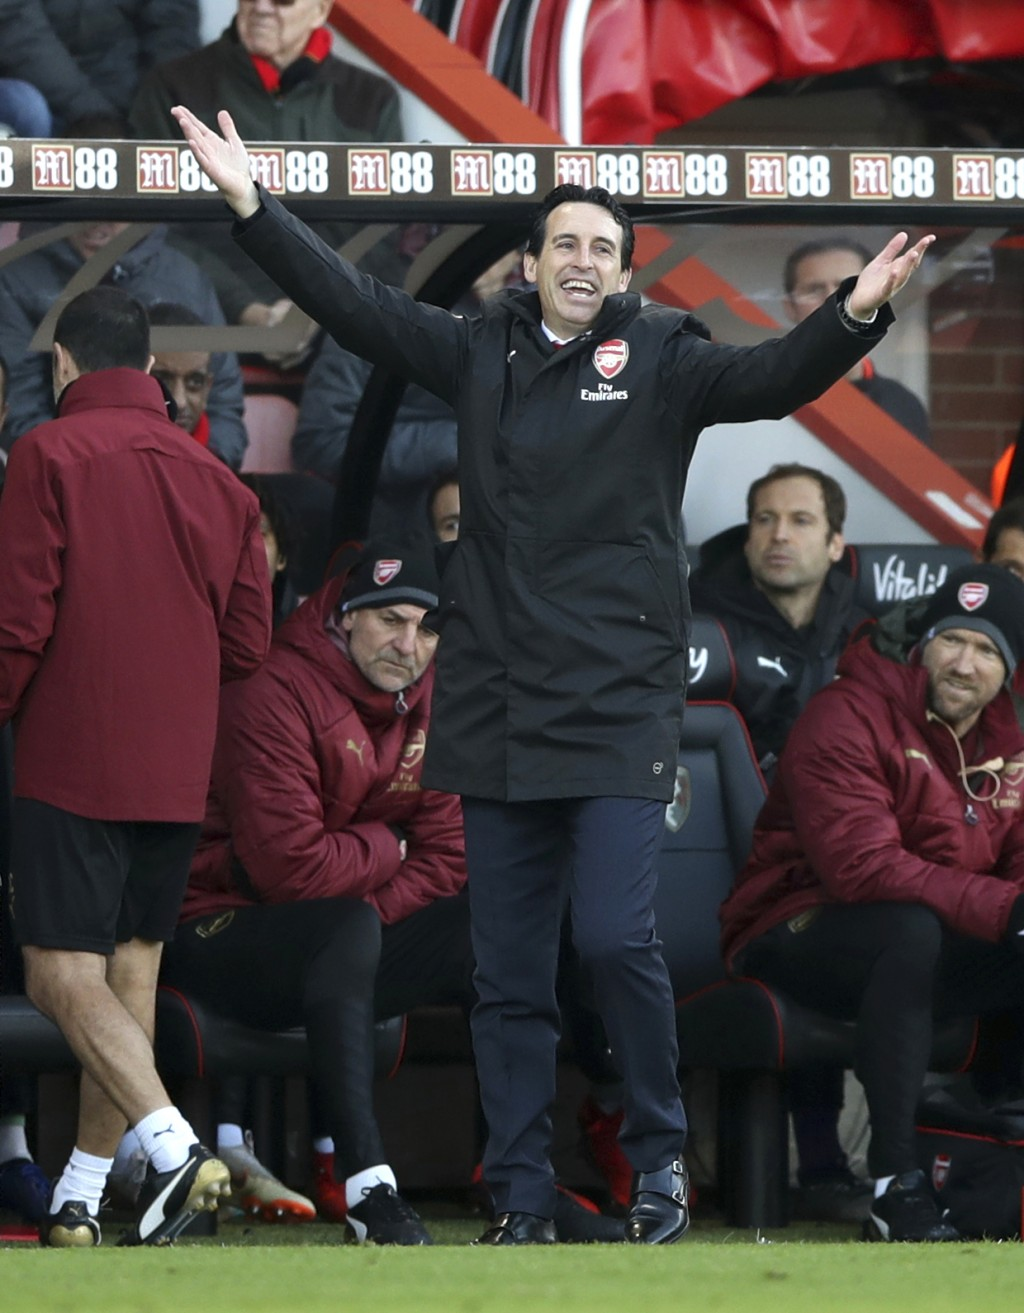 Arsenal head coach Unai Emery reacts during a Premier League soccer match between Bournemouth and Arsenal, at The Vitality Stadium, Bournemouth, Sunda